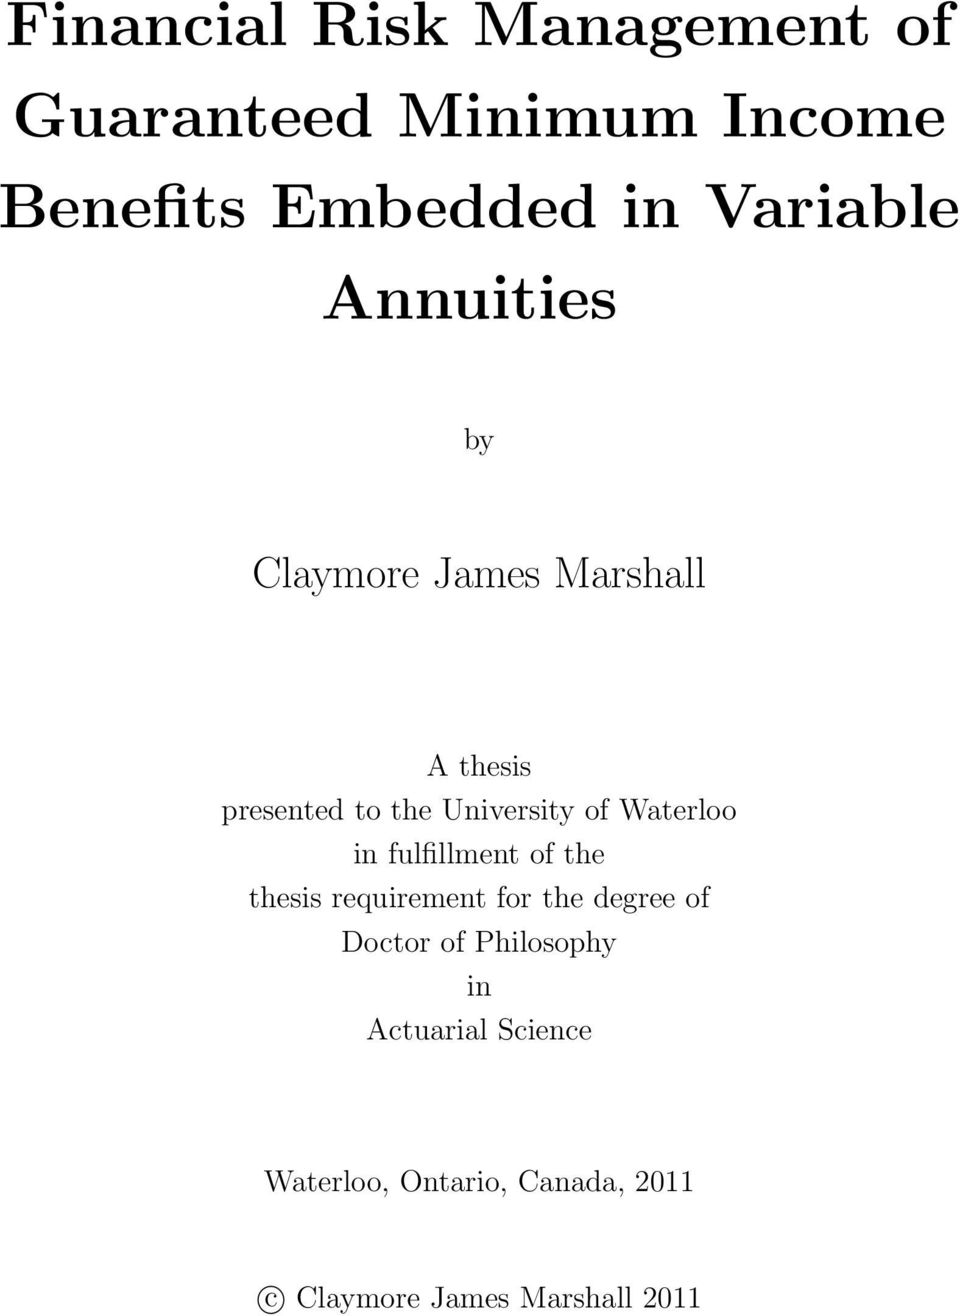 claymore marshall thesis